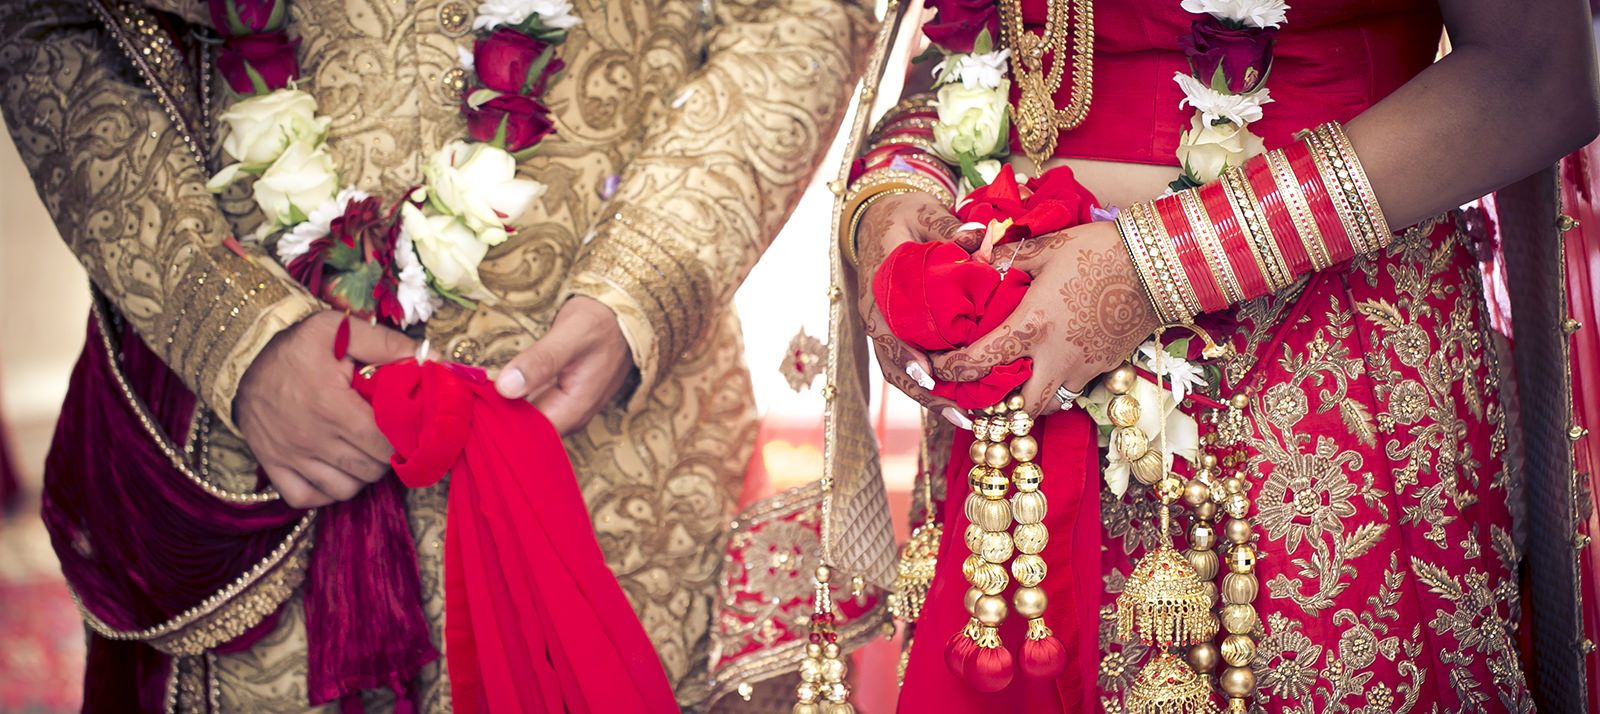 images/blog/07-Indian-wedding-in-Italy.jpg